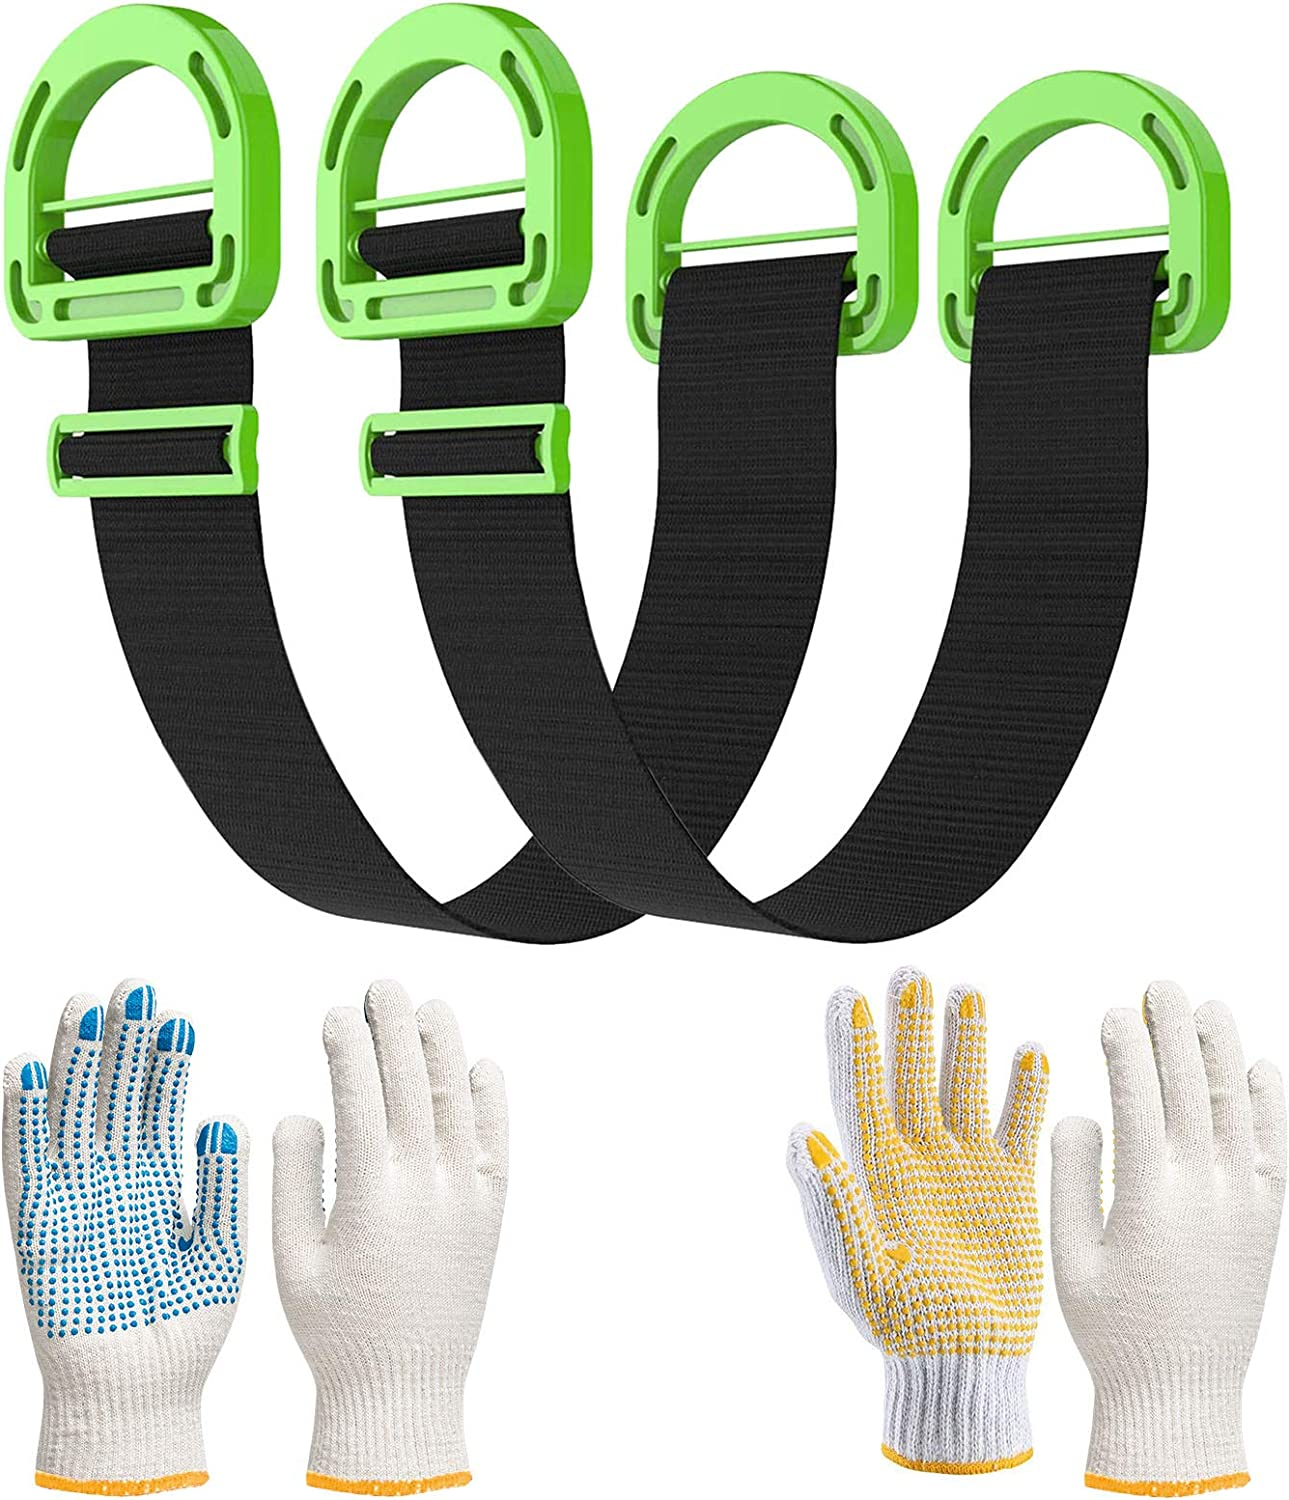 Move Straps, Moving and Lifting Straps Adjustable for Furniture, Box, Mattress, Construction Materials, or Other Heavy, Bulky Objects, Single or Two Person Carrying 2pcs,with Soft Handle